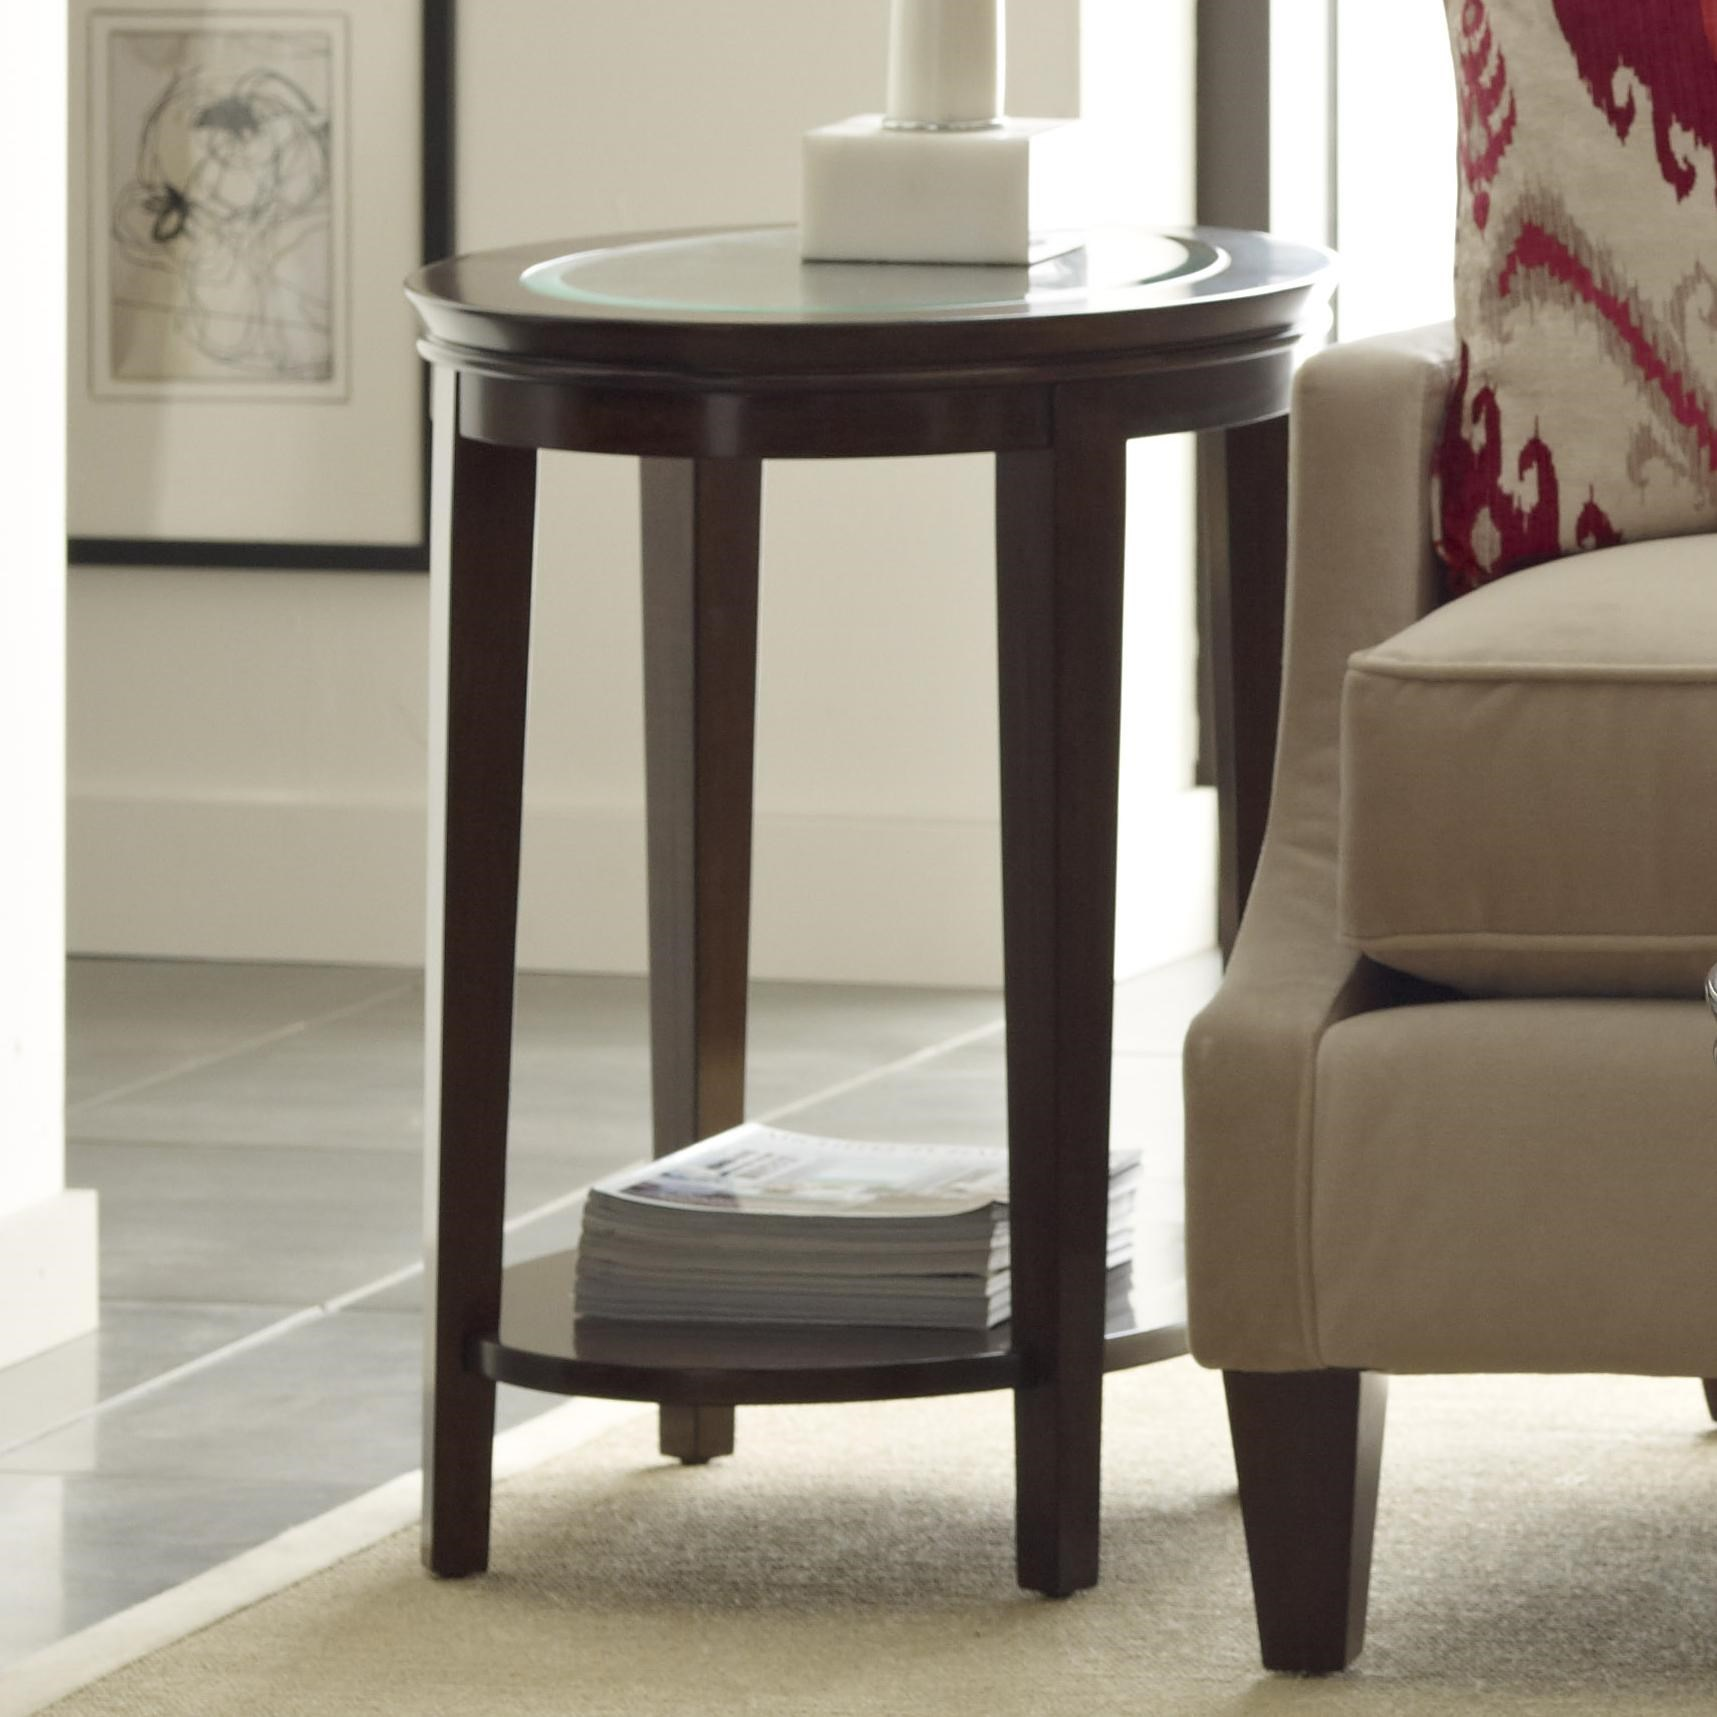 Kincaid Furniture Elise Transitional Elise Oval End Table With Glass Top